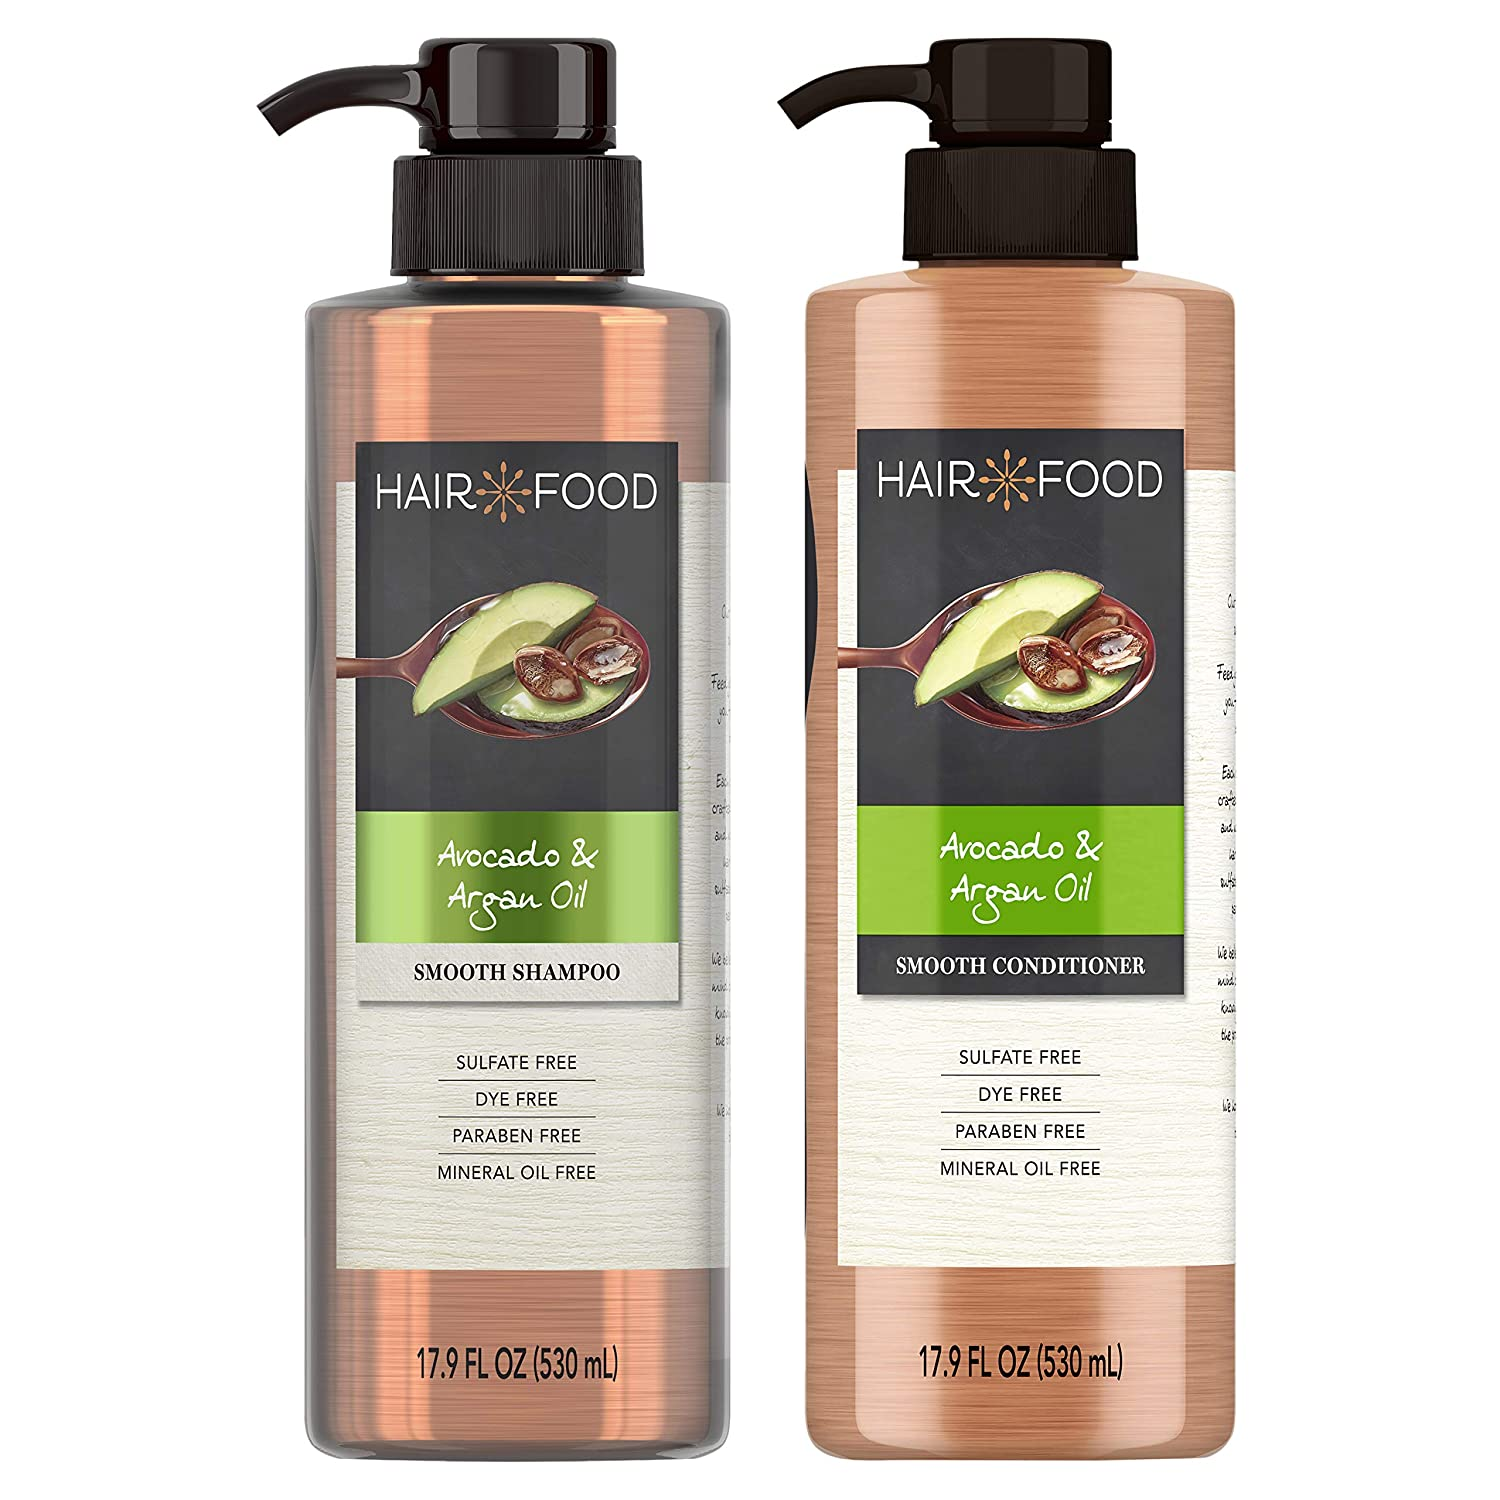 Hair Food, Sulfate Free Shampoo and Conditioner, with Argan Oil and Avocado, 17.9 Oz, Dual Pack